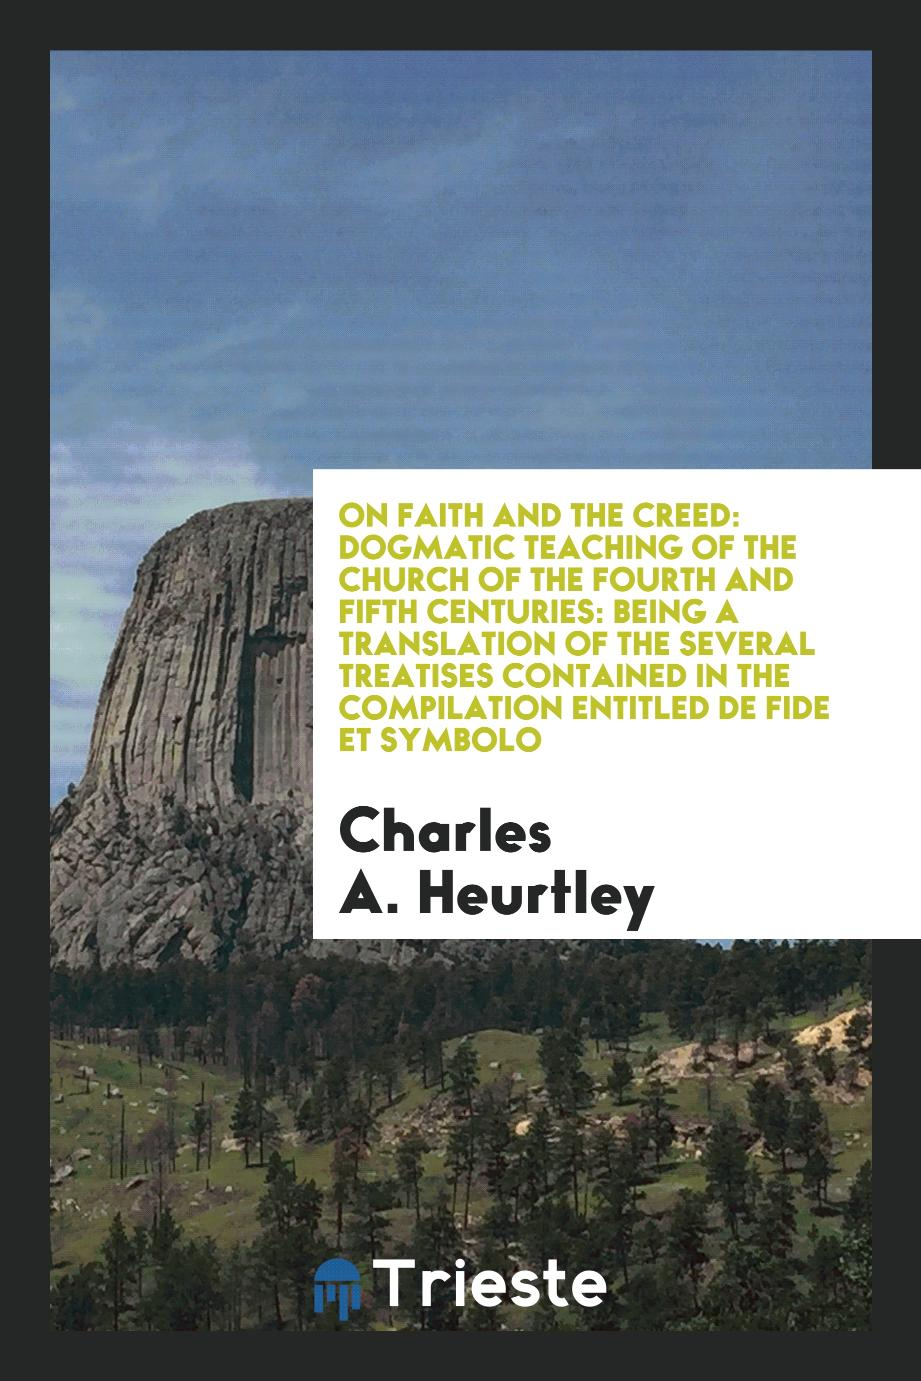 Charles A. Heurtley - On Faith and the Creed: Dogmatic Teaching of the Church of the Fourth and Fifth Centuries: Being a Translation of the Several Treatises Contained in the Compilation Entitled De Fide Et Symbolo